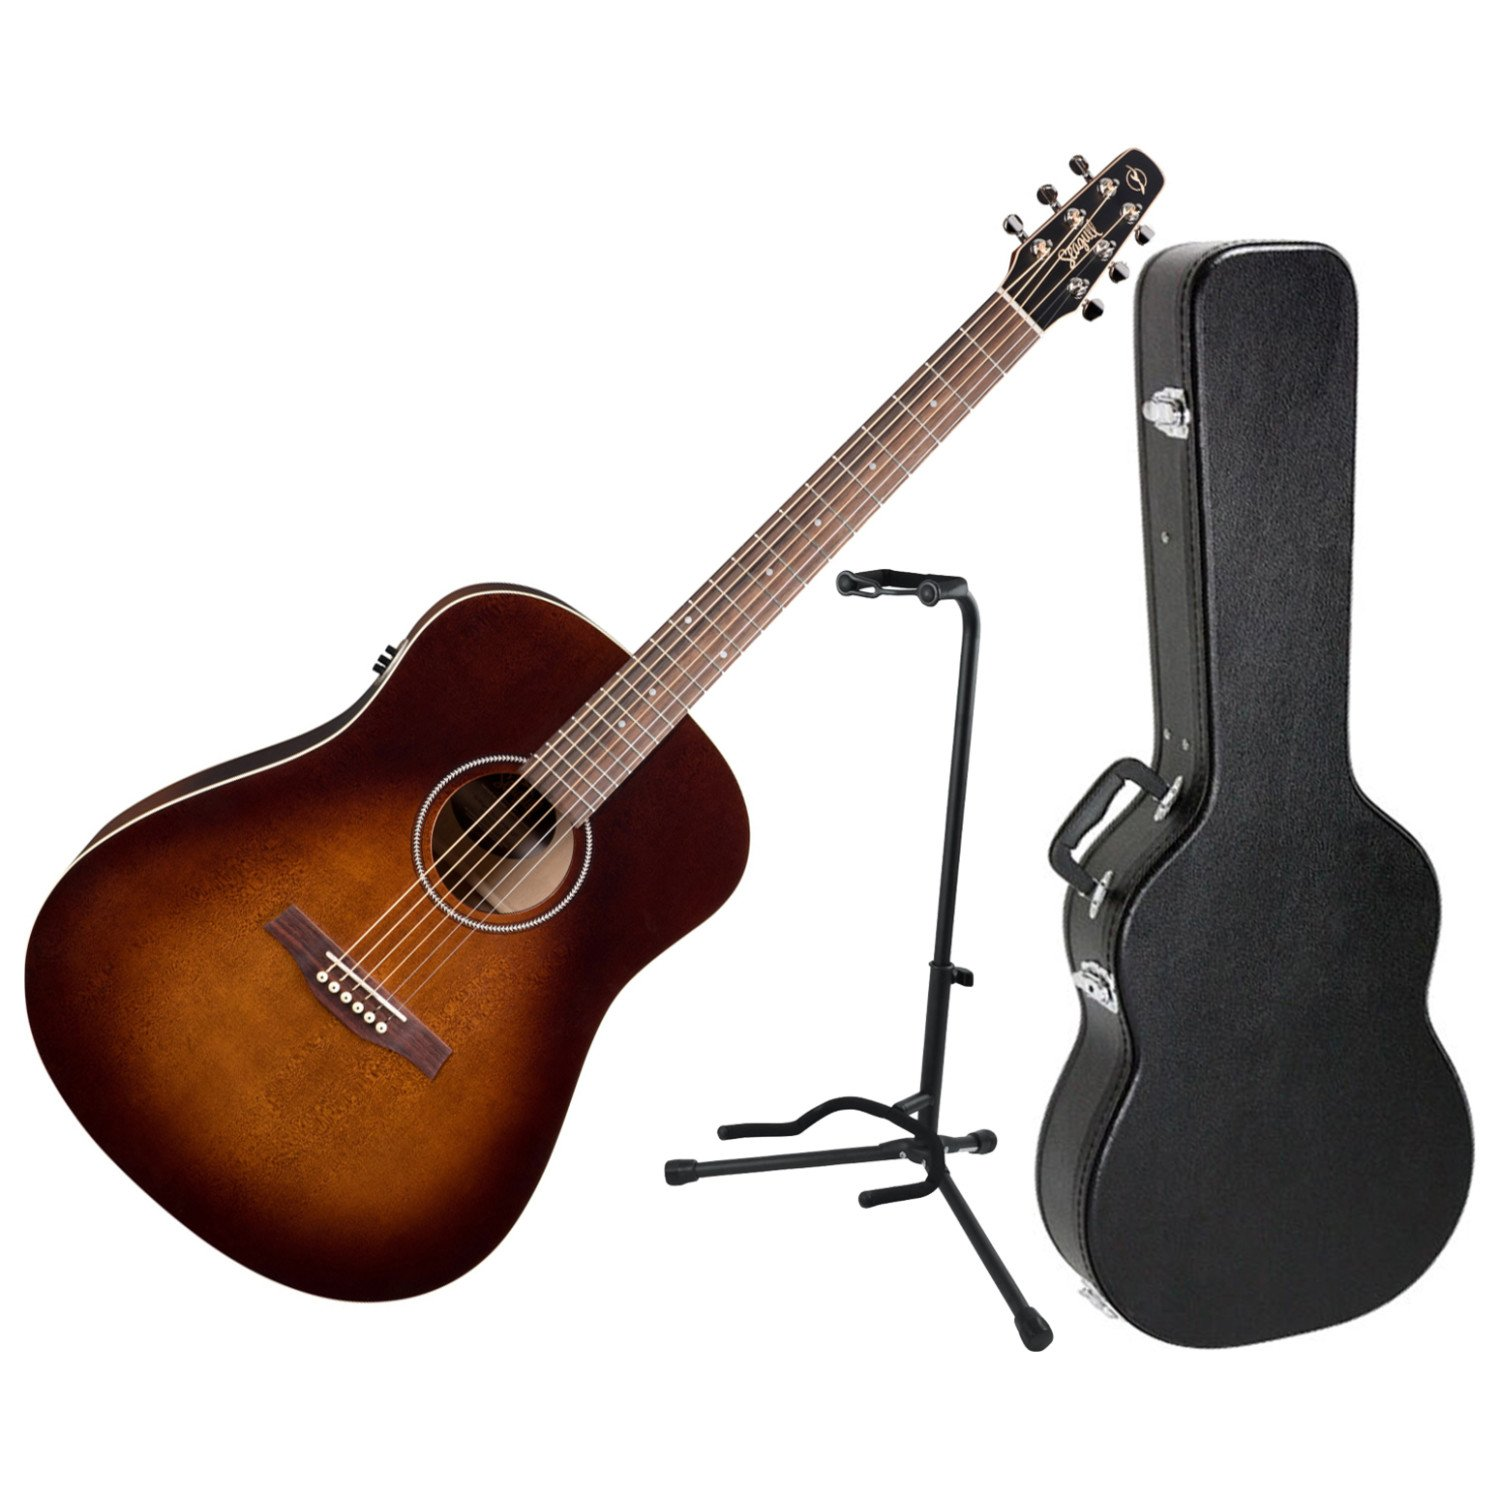 Seagull S6 Original Burnt Umber QIT Acoustic-Electric Guitar (Open Box) by Seagull